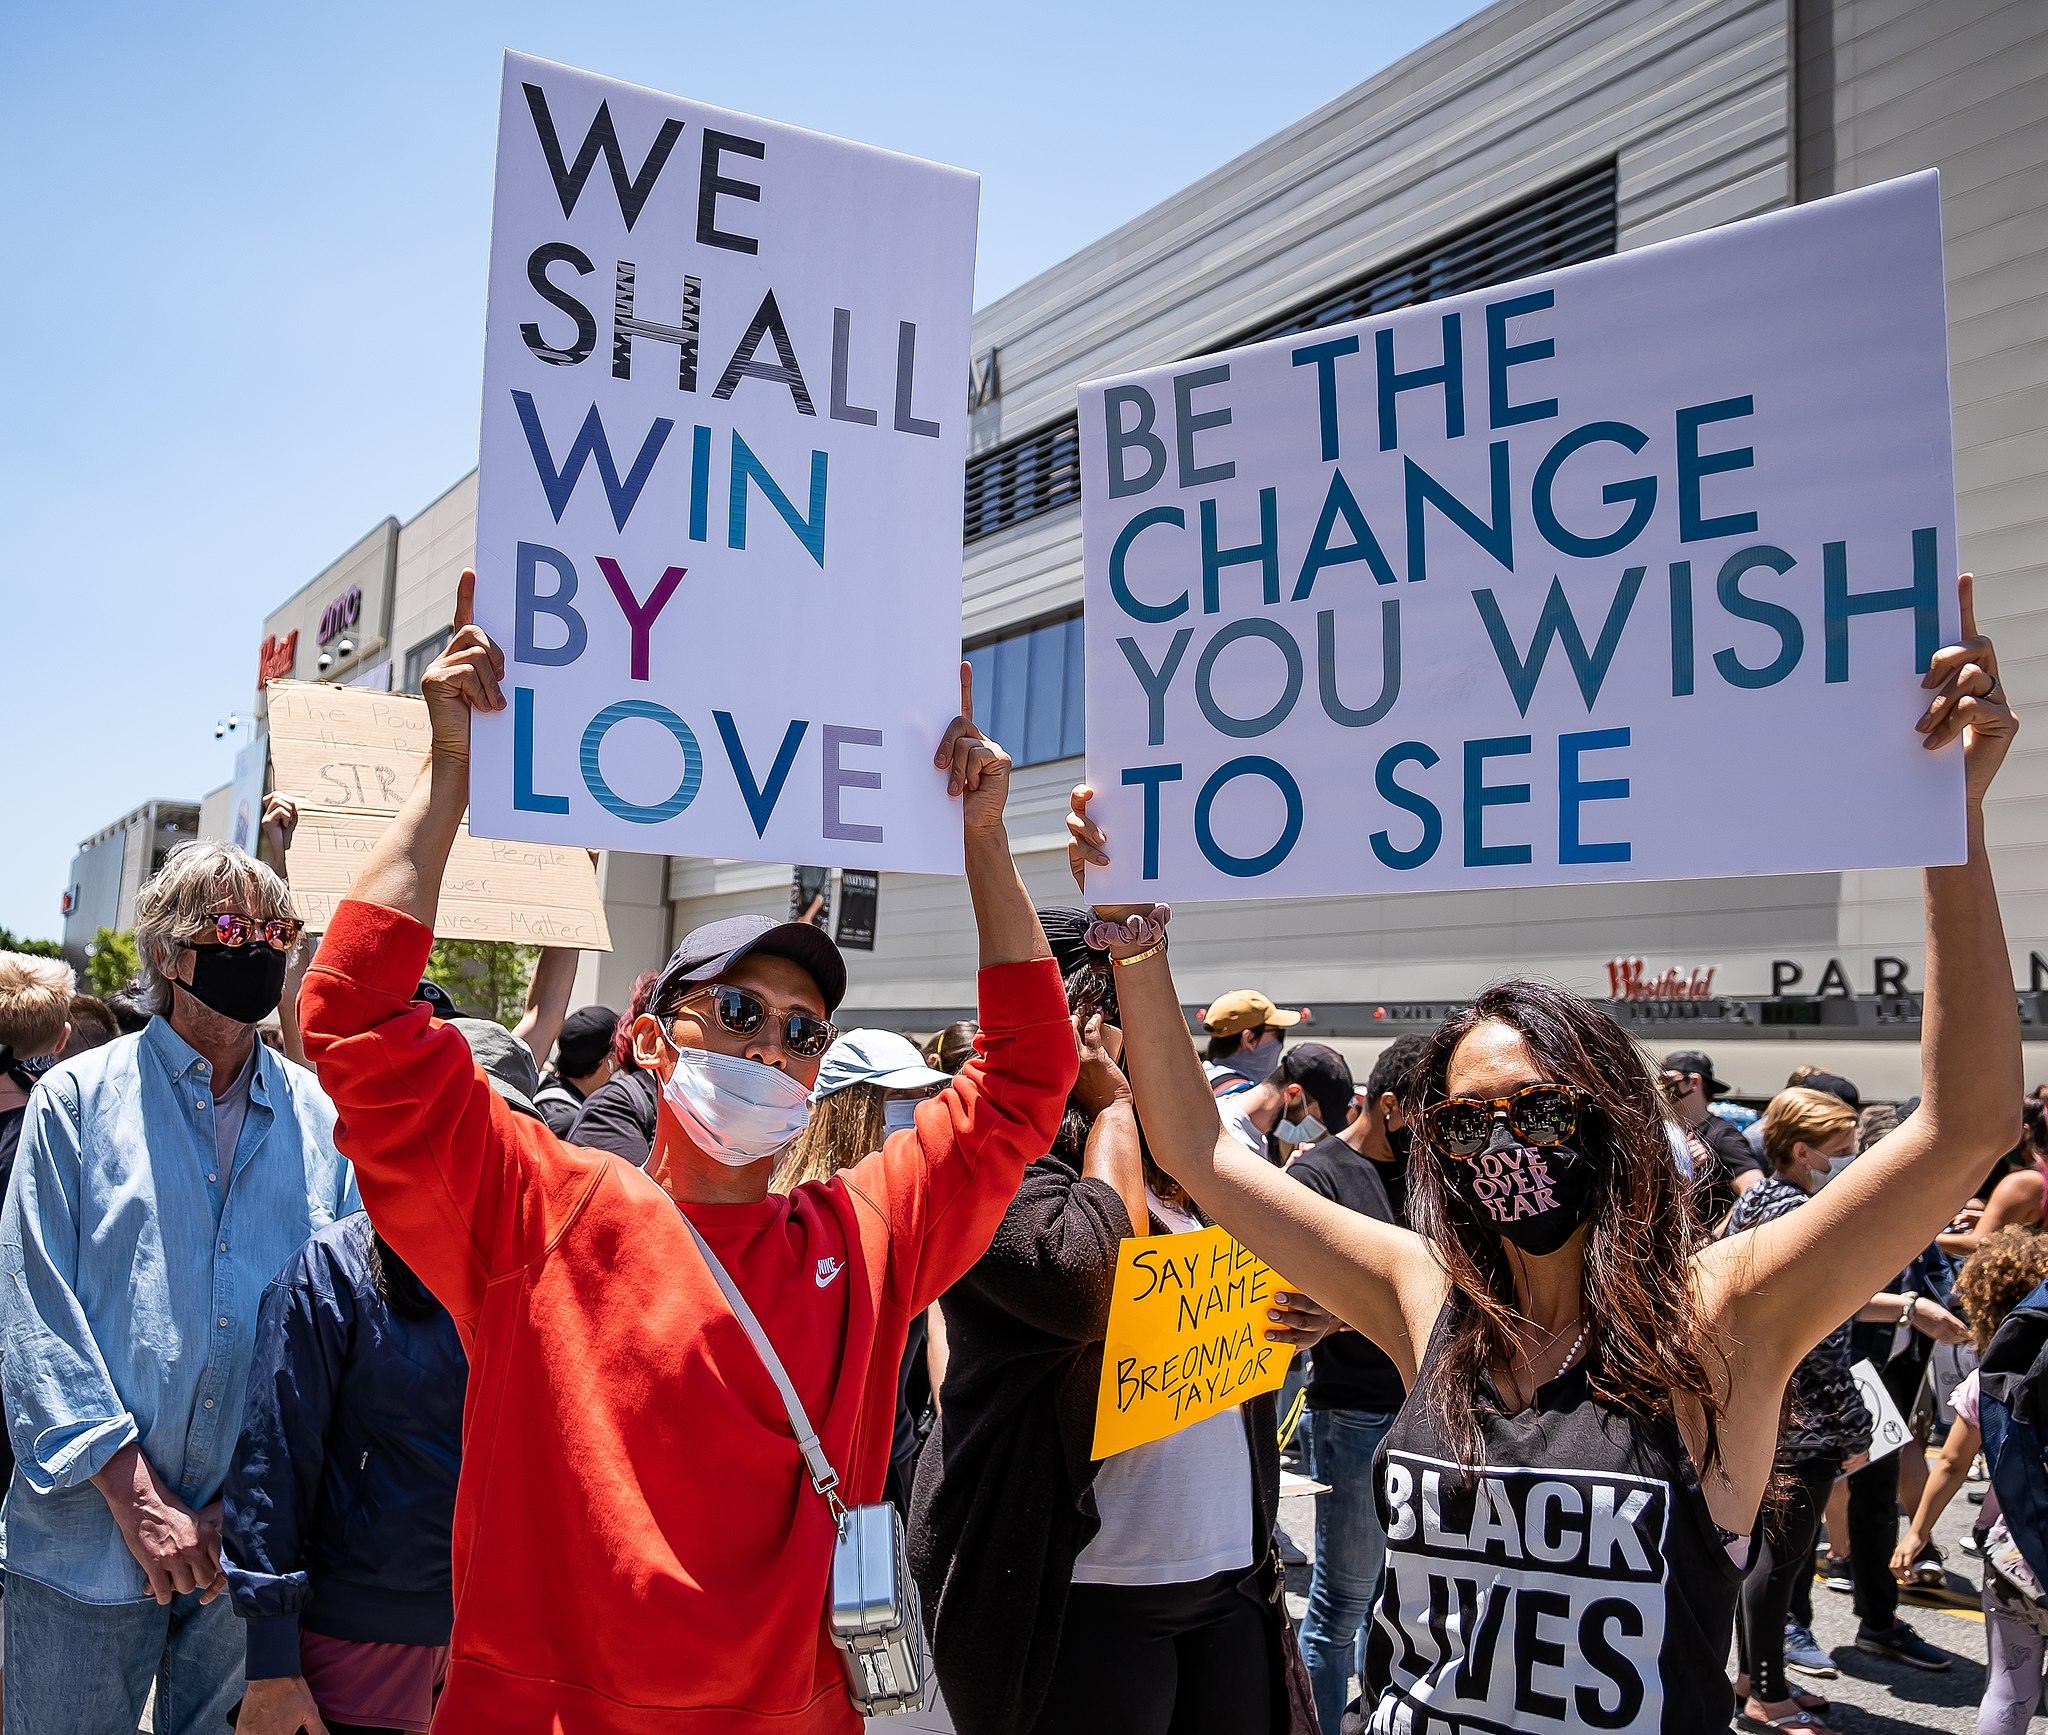 Crowd of Black Lives Matters Protesters with Inspirational Signs Advocating for Change